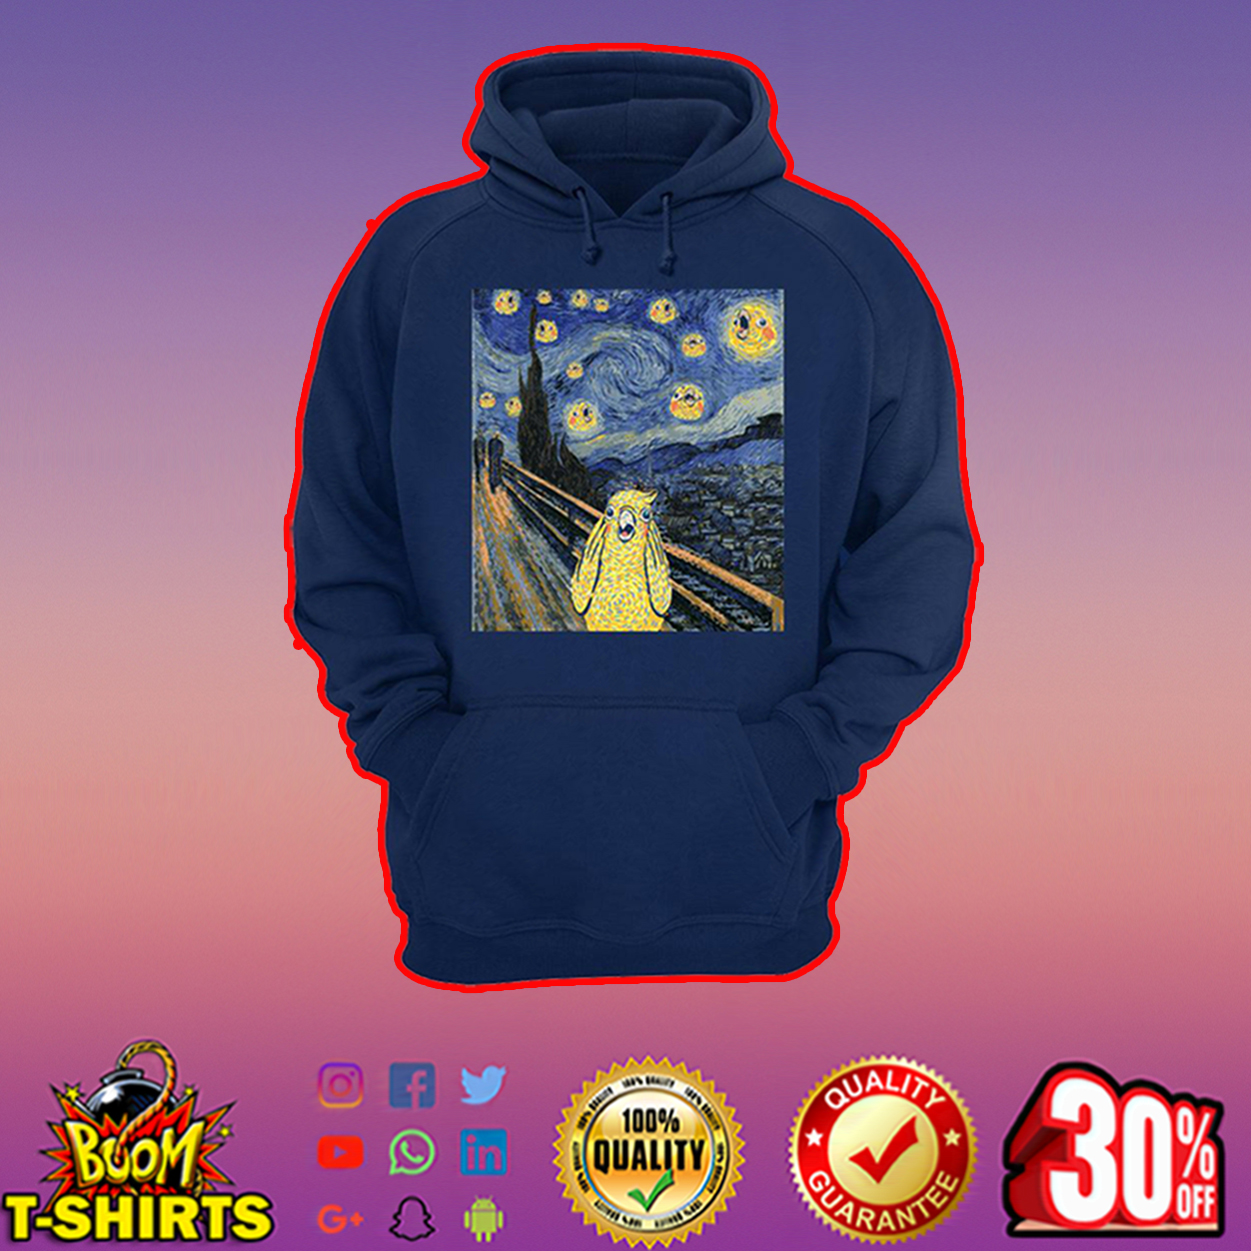 The scream bird merch hoodie